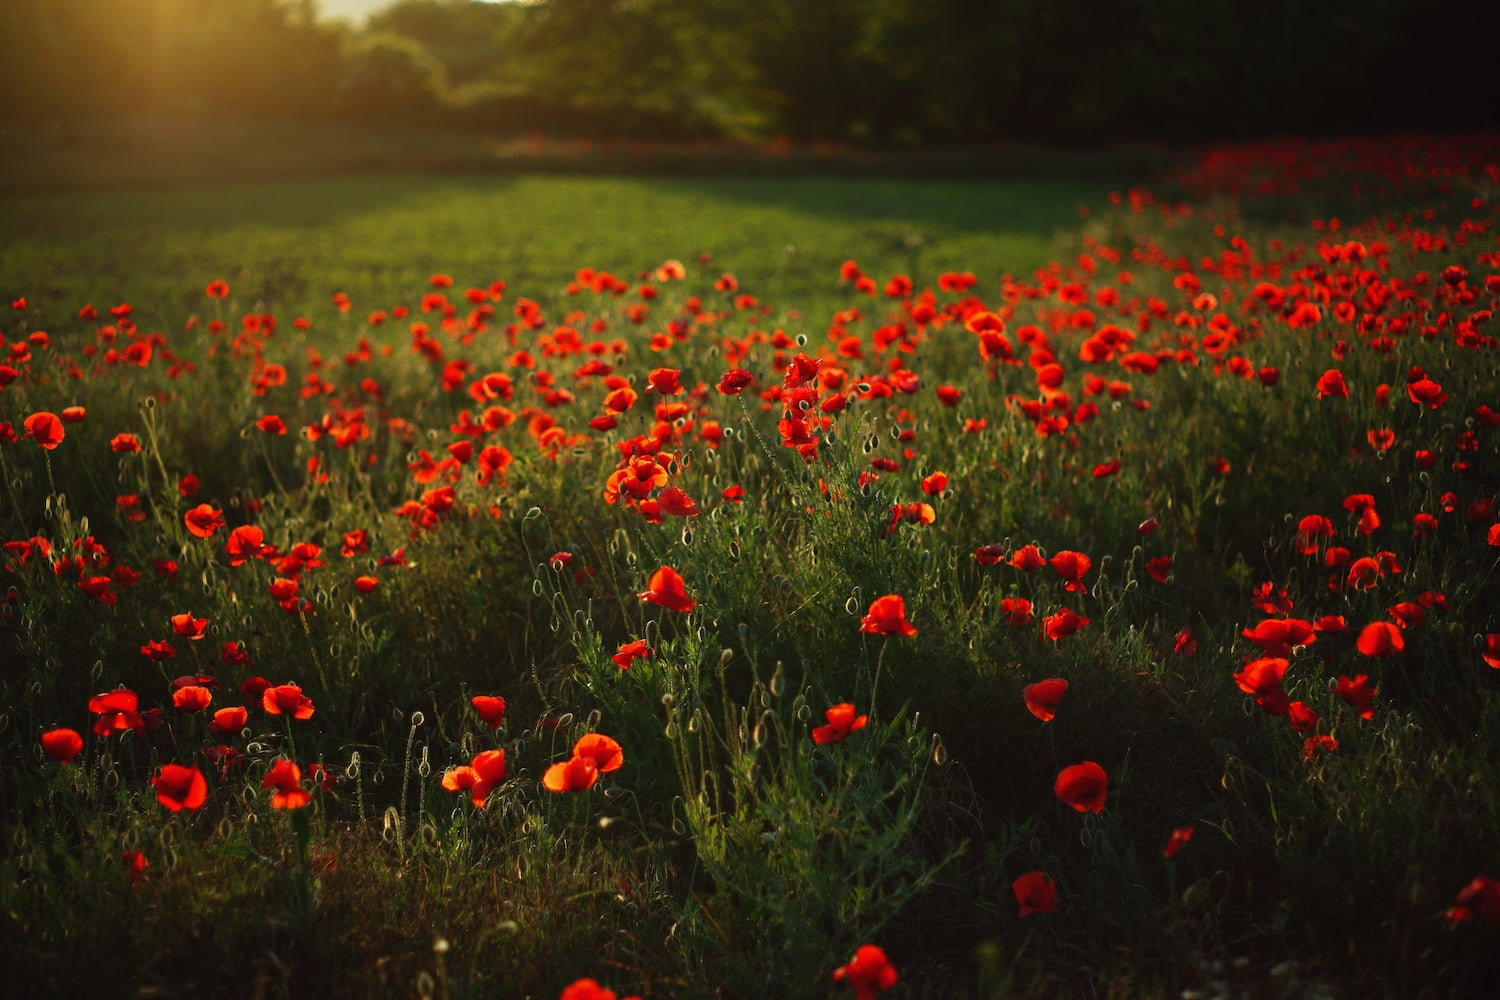 Field of Poppies - Unsplash Photo by Evgeniy Gorbenko